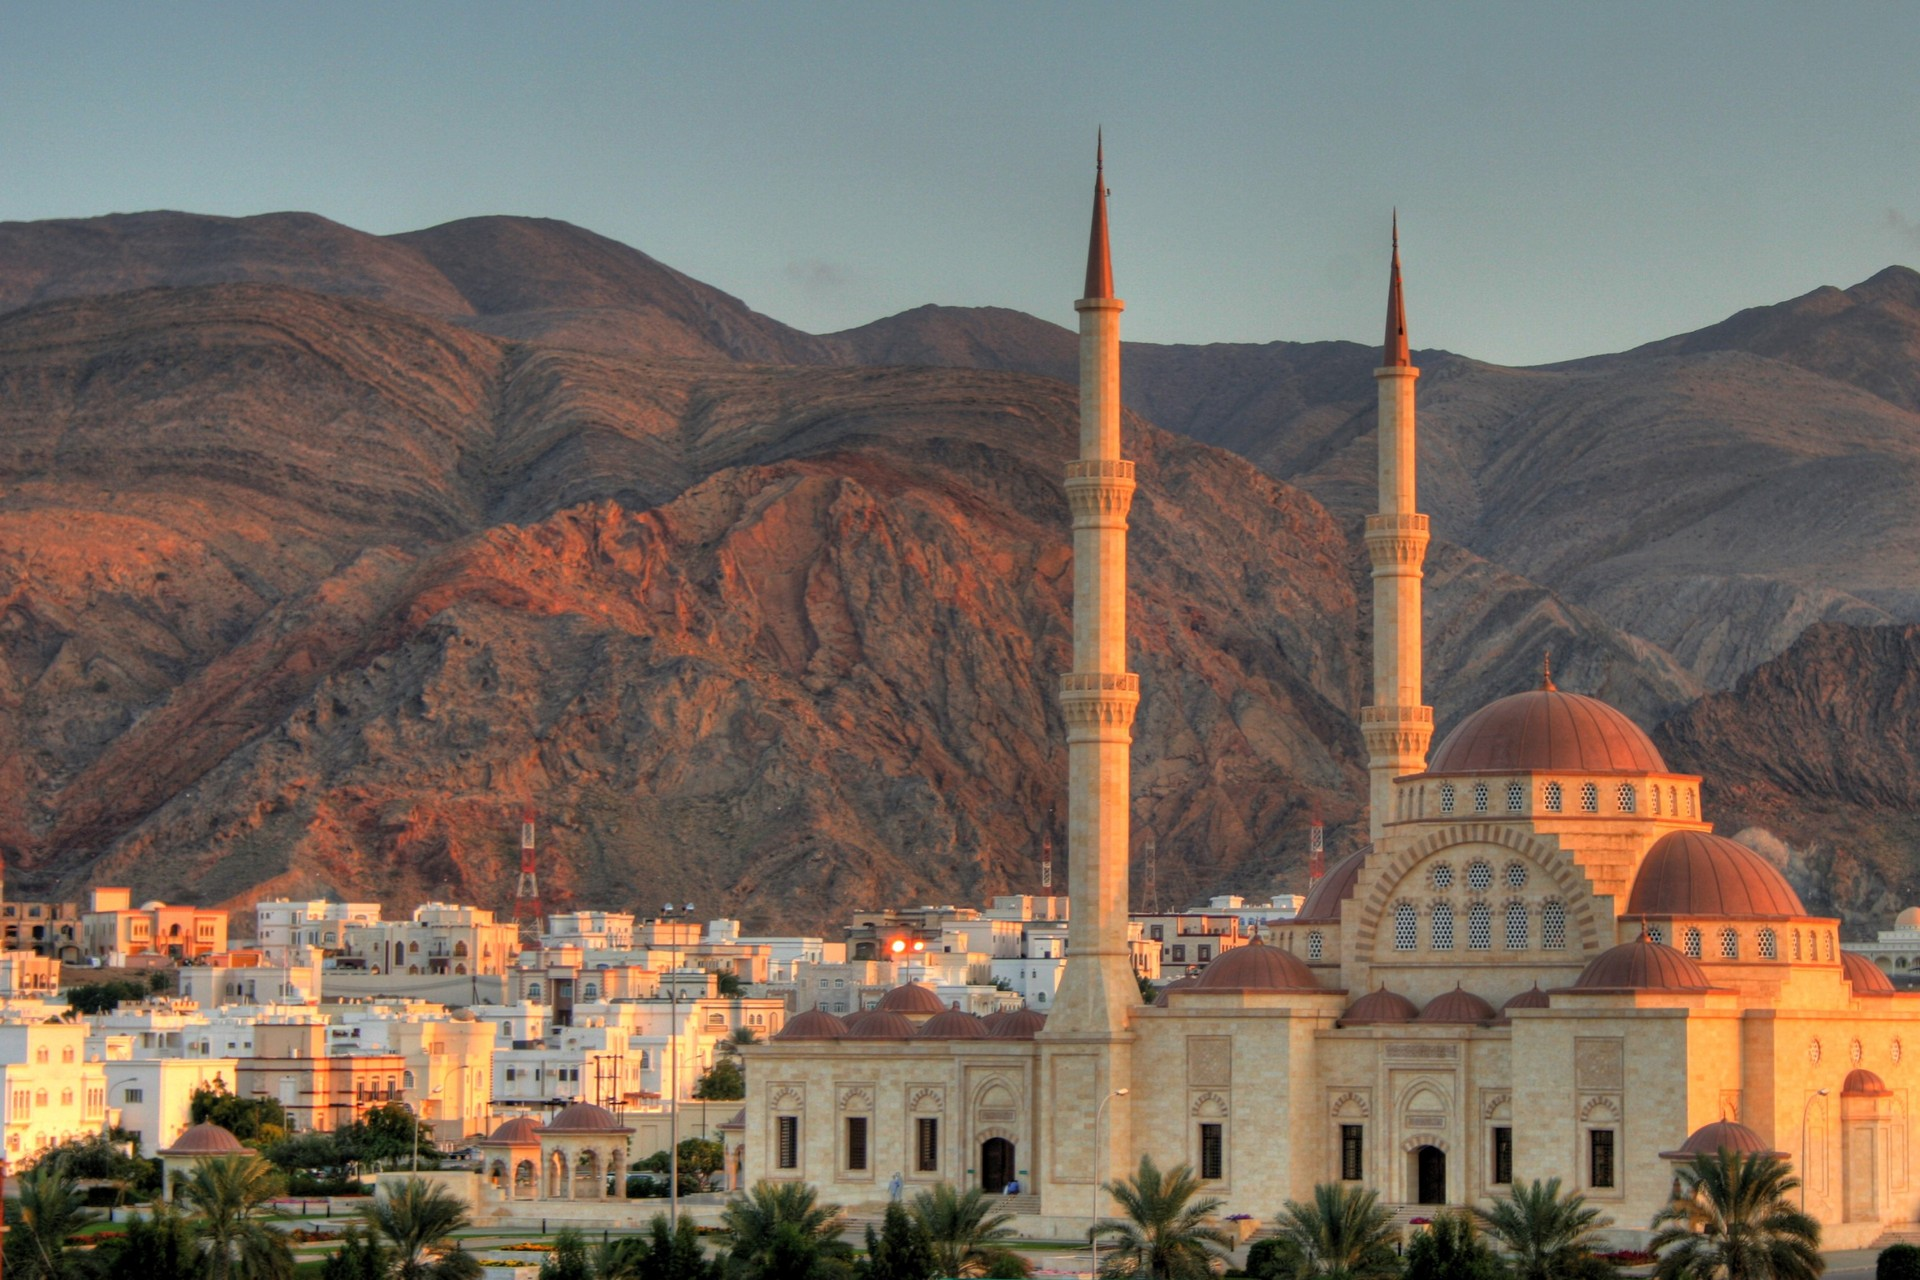 Sunset over Muscat, Oman